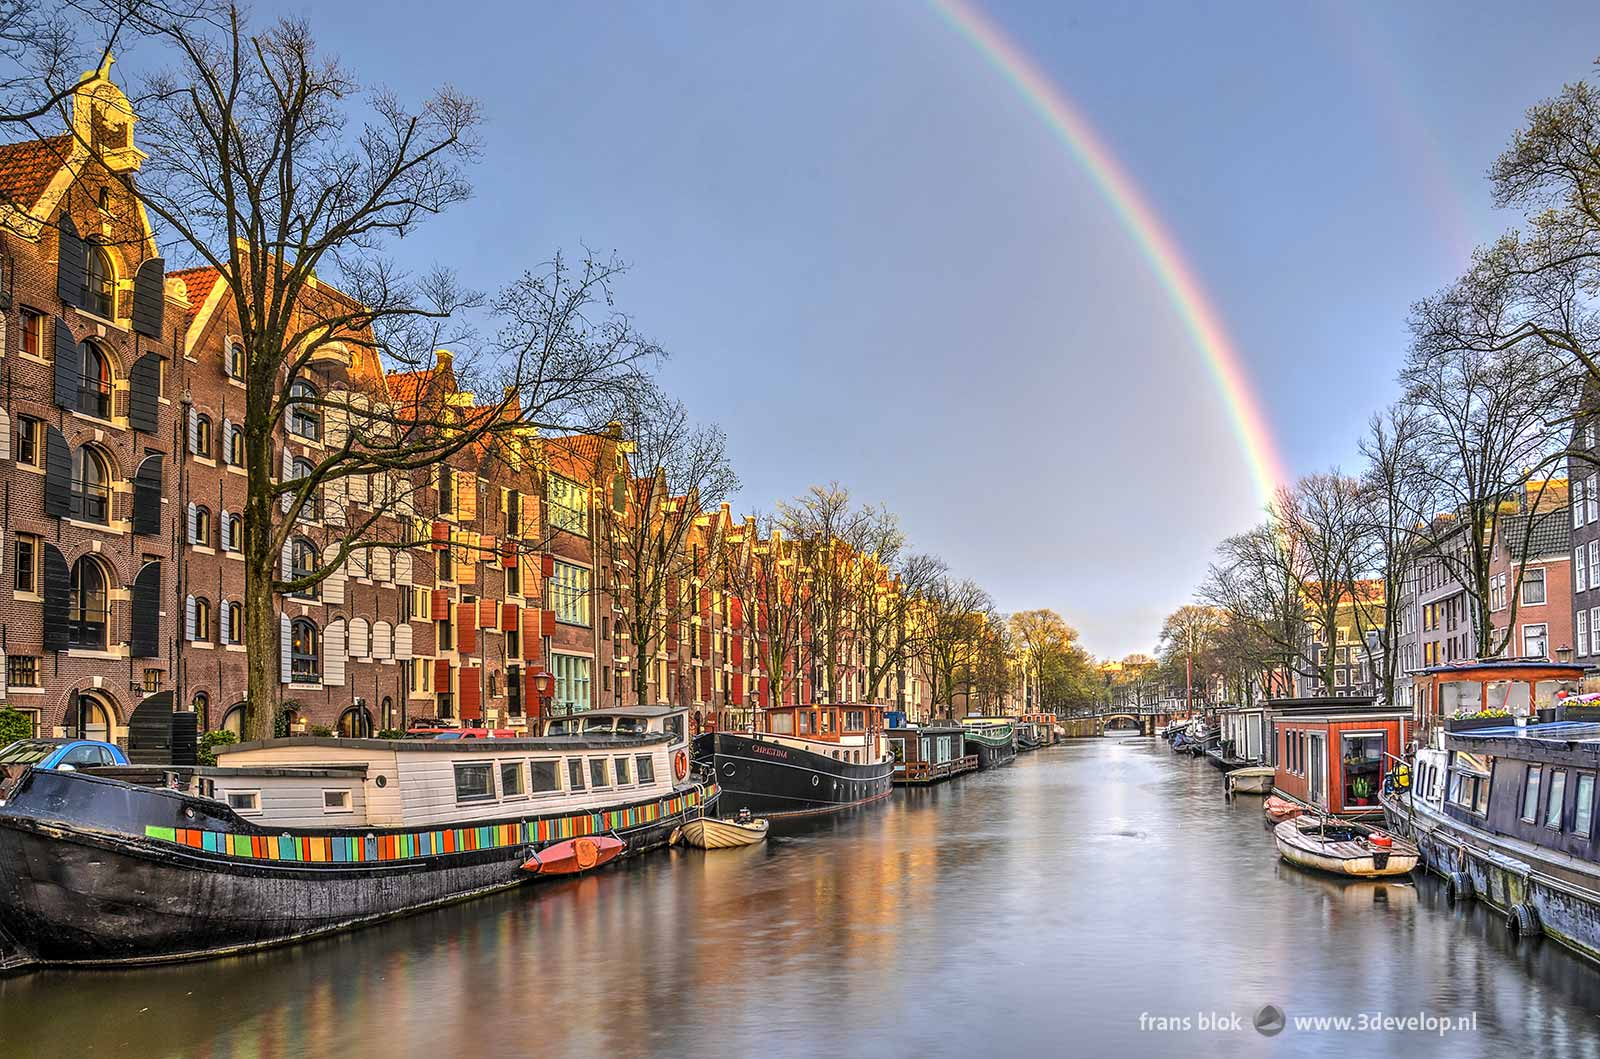 A rainbow seen from a bridge over the Brouwersgracht in Amsterdam, flanked by houseboats while the last raindrops are splashing in the water